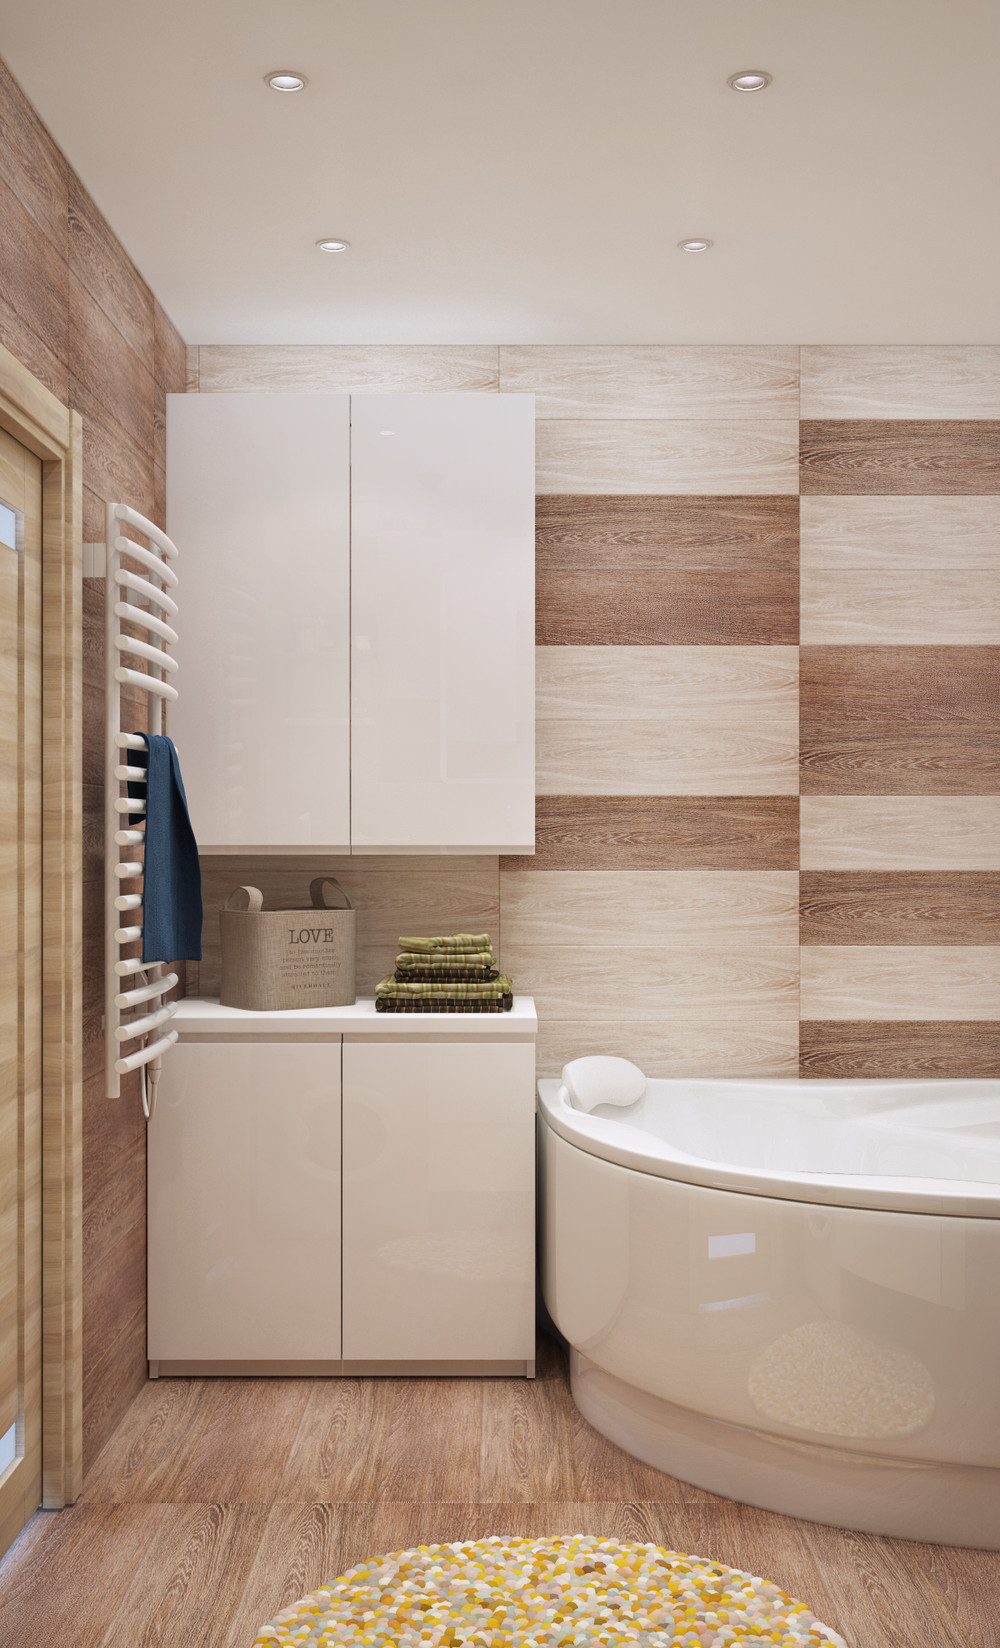 Wood tile bathroom interior design ideas Interior design ideas bathroom tiles